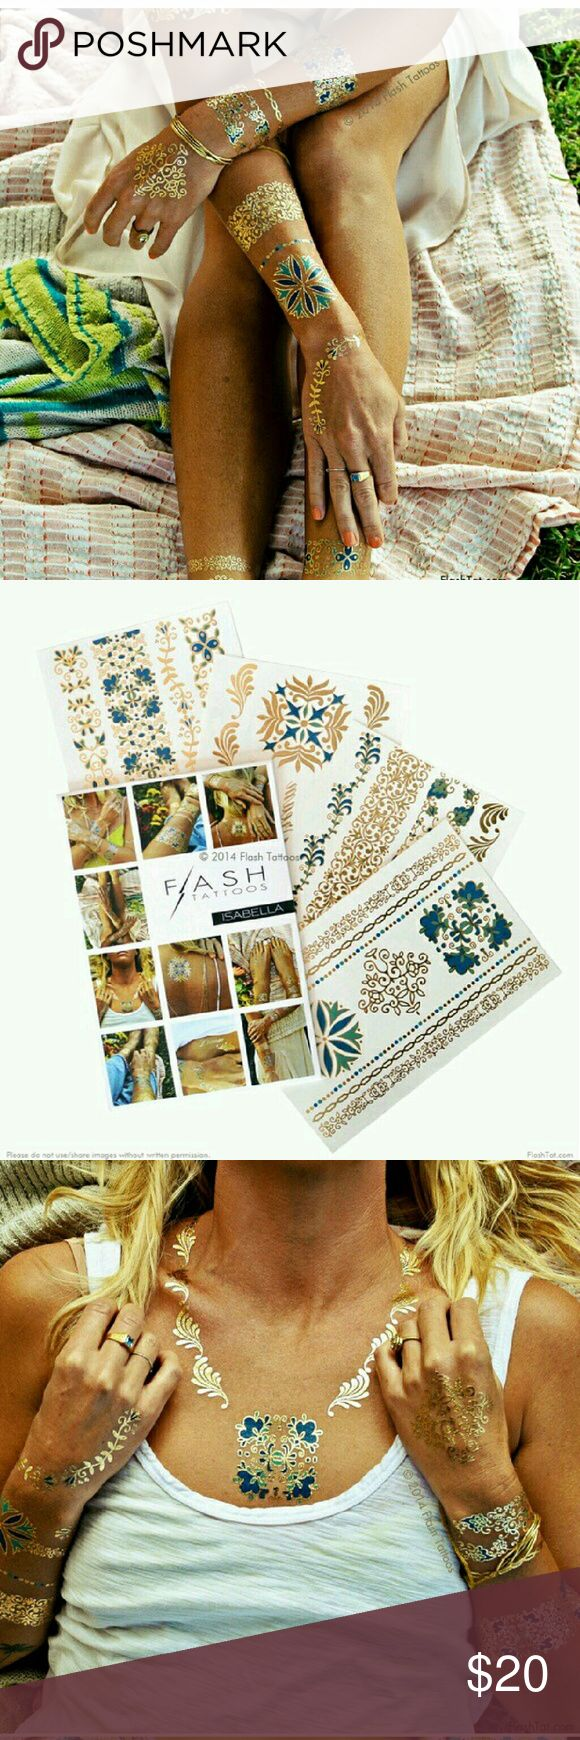 Isabella Flash Tattoos set The Isabella collection features of feminine mix of jewelry inspired designs in a bold blue, soft green, and gold hues inspired by the vibrant color palette of the Mediterranean. This listing is for one Isabella pack which includes four sheets with over 33-metallic tattoos. Flash Tattoo Other